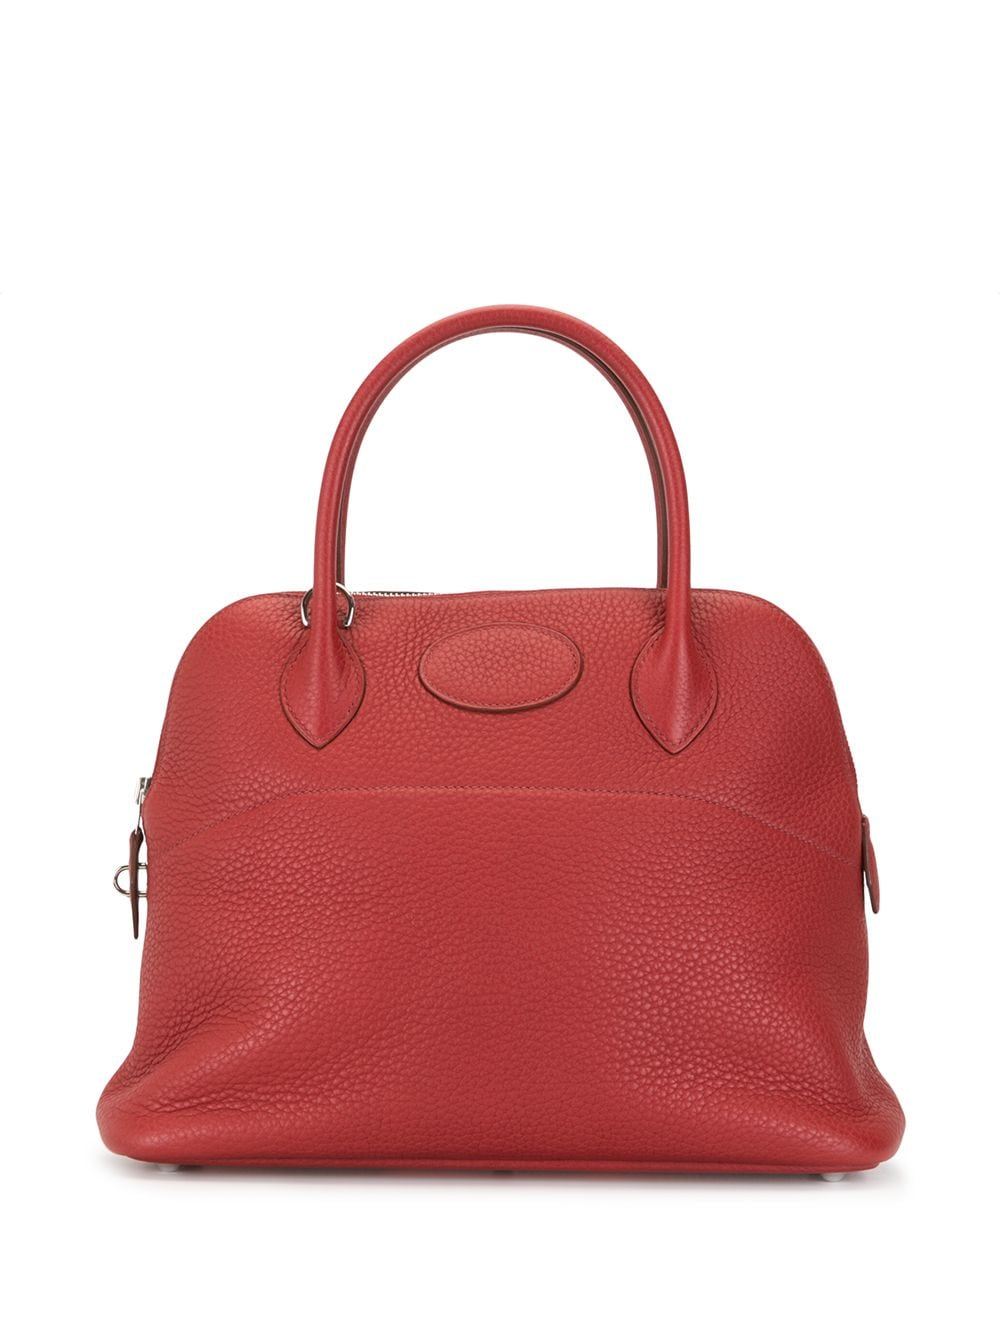 Hermès 2015 pre-owned Bolide Handtasche, 31cm - Rot